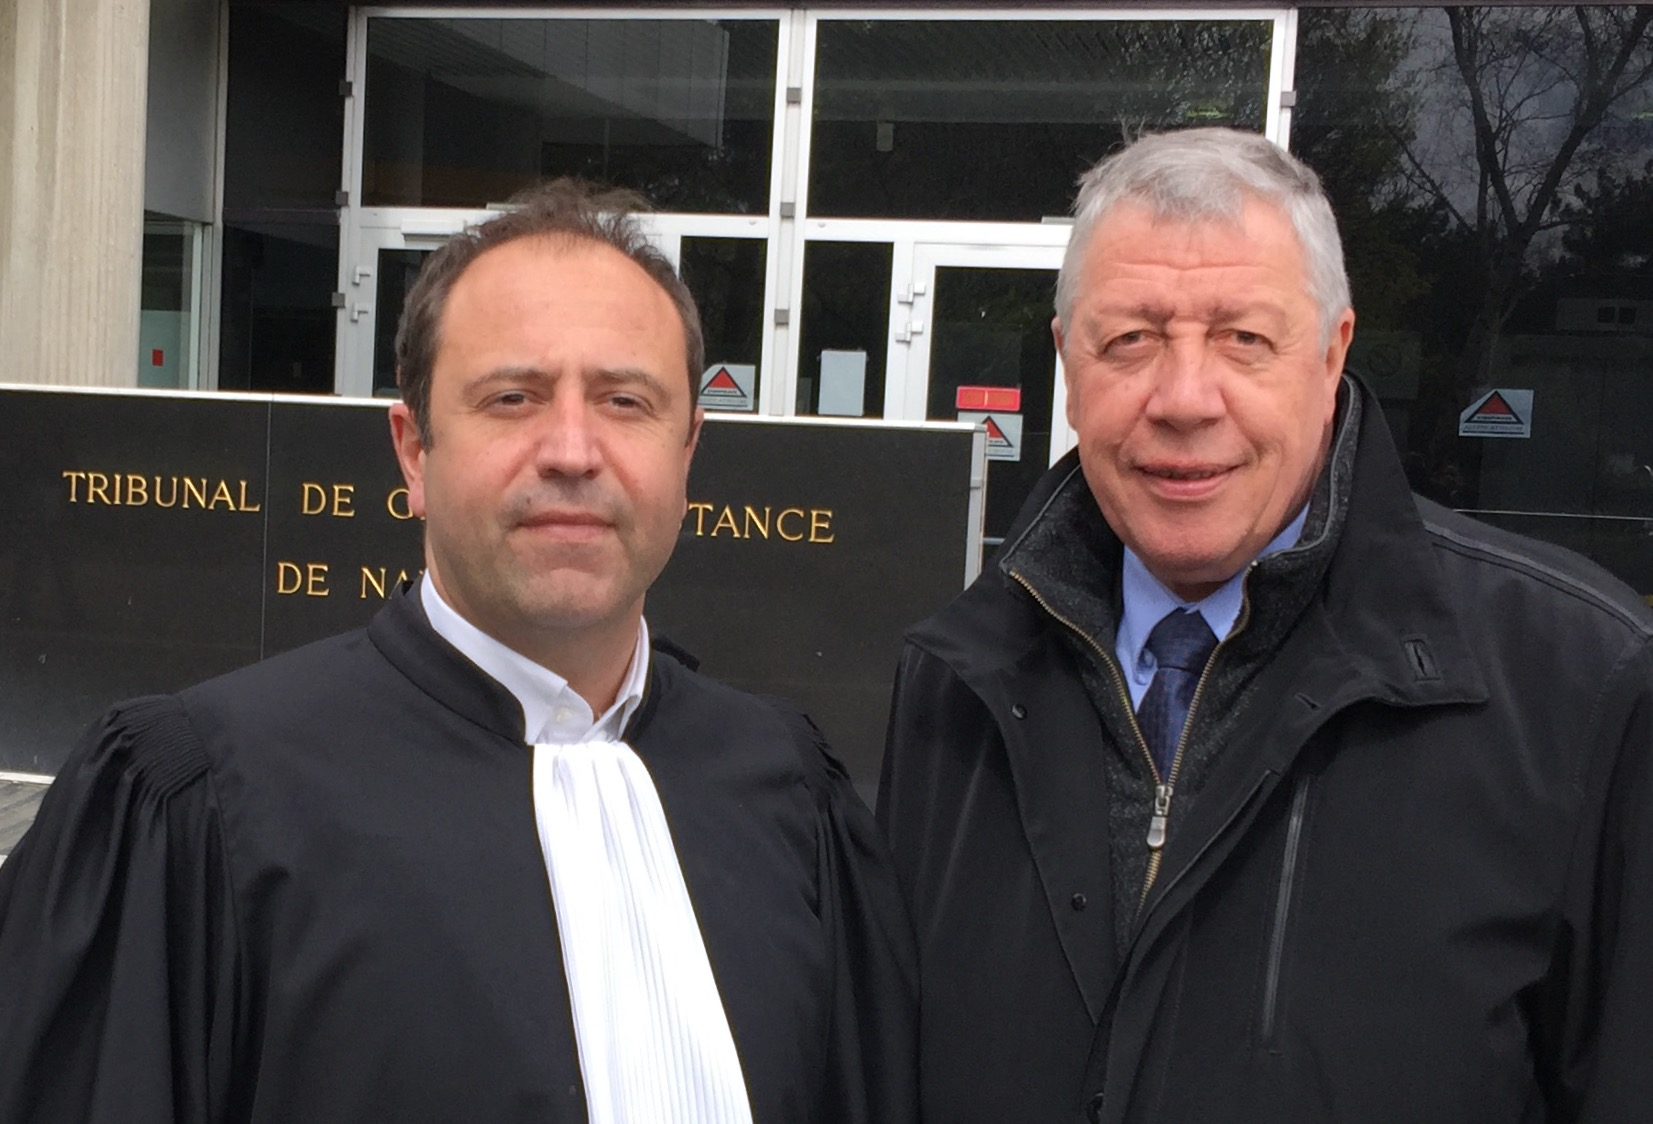 Sevag Torossian lawyer of french National Assembly Deputy trial succes